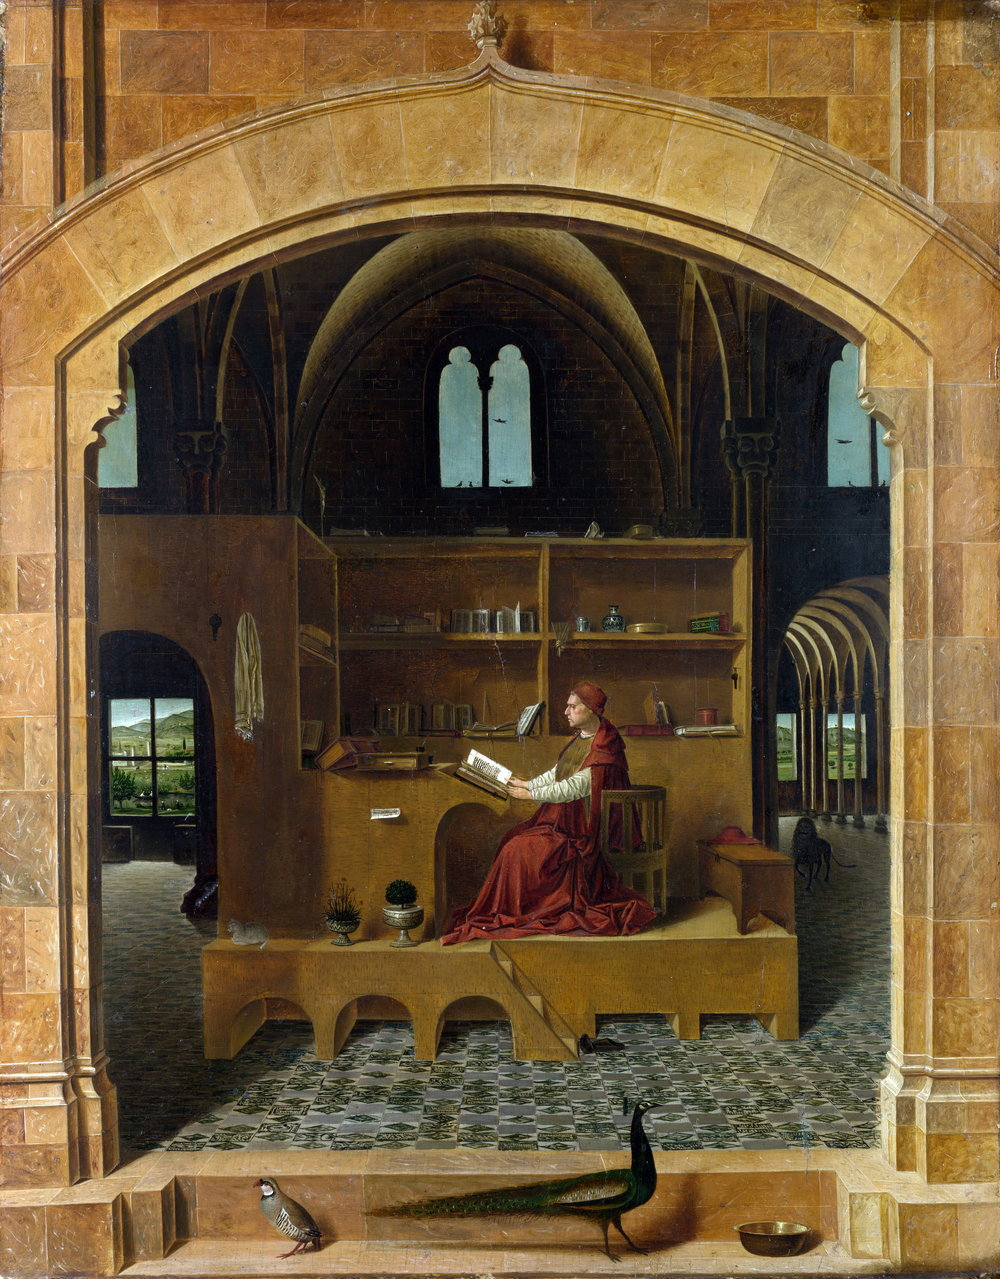 Antonello_da_Messina_-_St_Jerome_in_his_study_-_National_Gallery_London.jpg